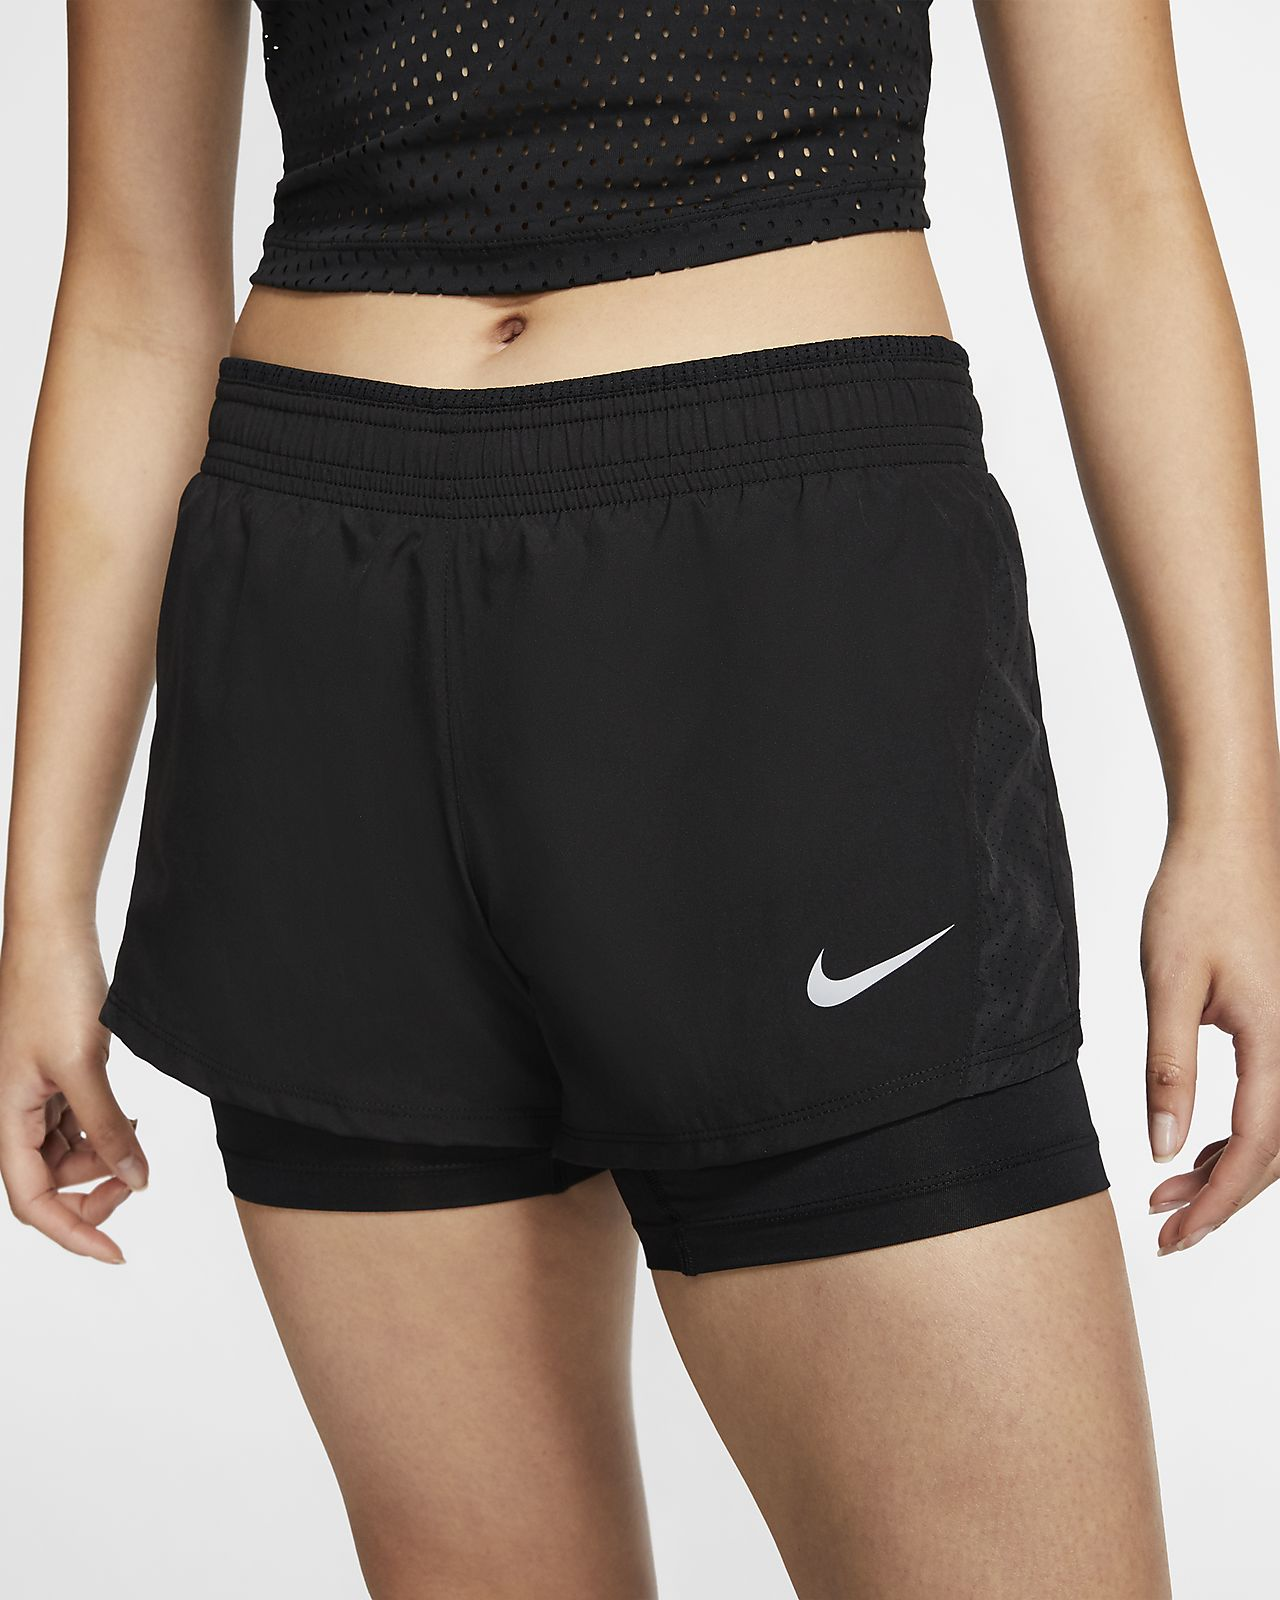 2 in 1 nike shorts womens